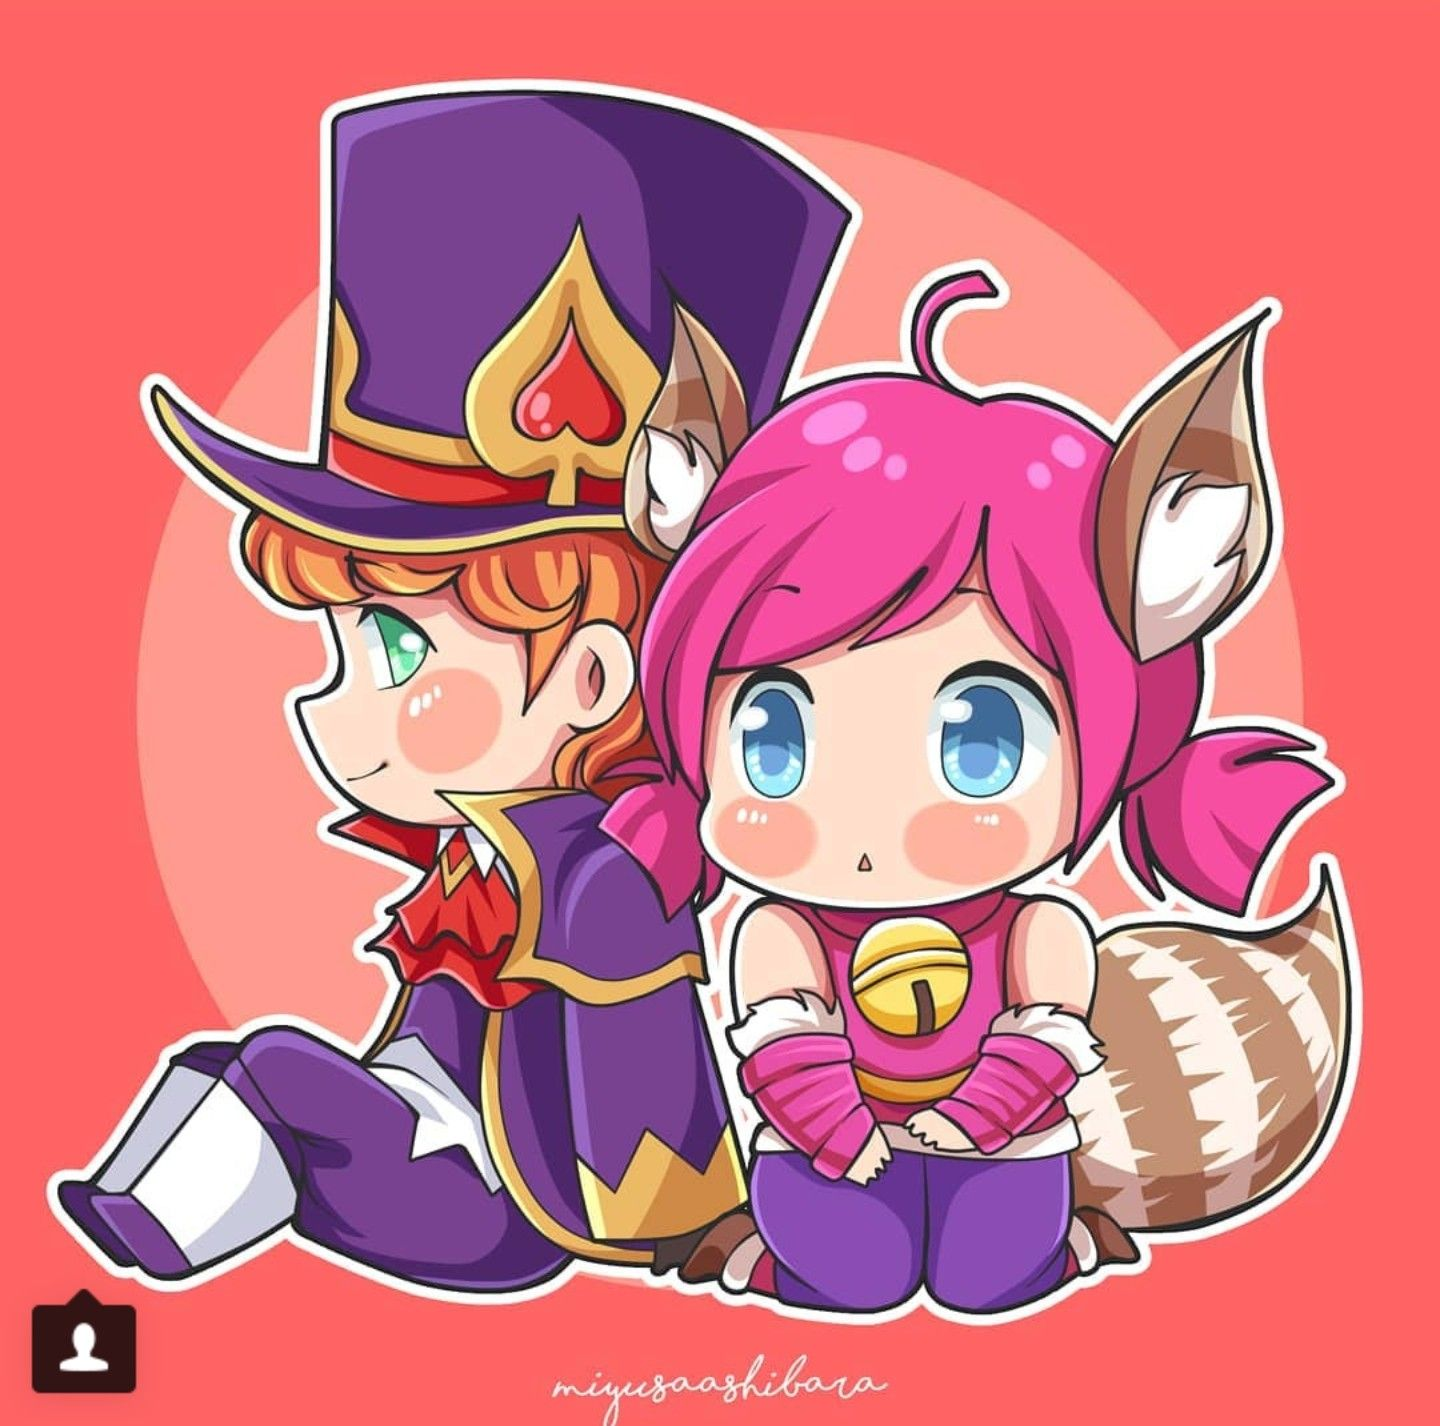 910+ Gambar Hero Mobile Legends Nana HD Terbaik